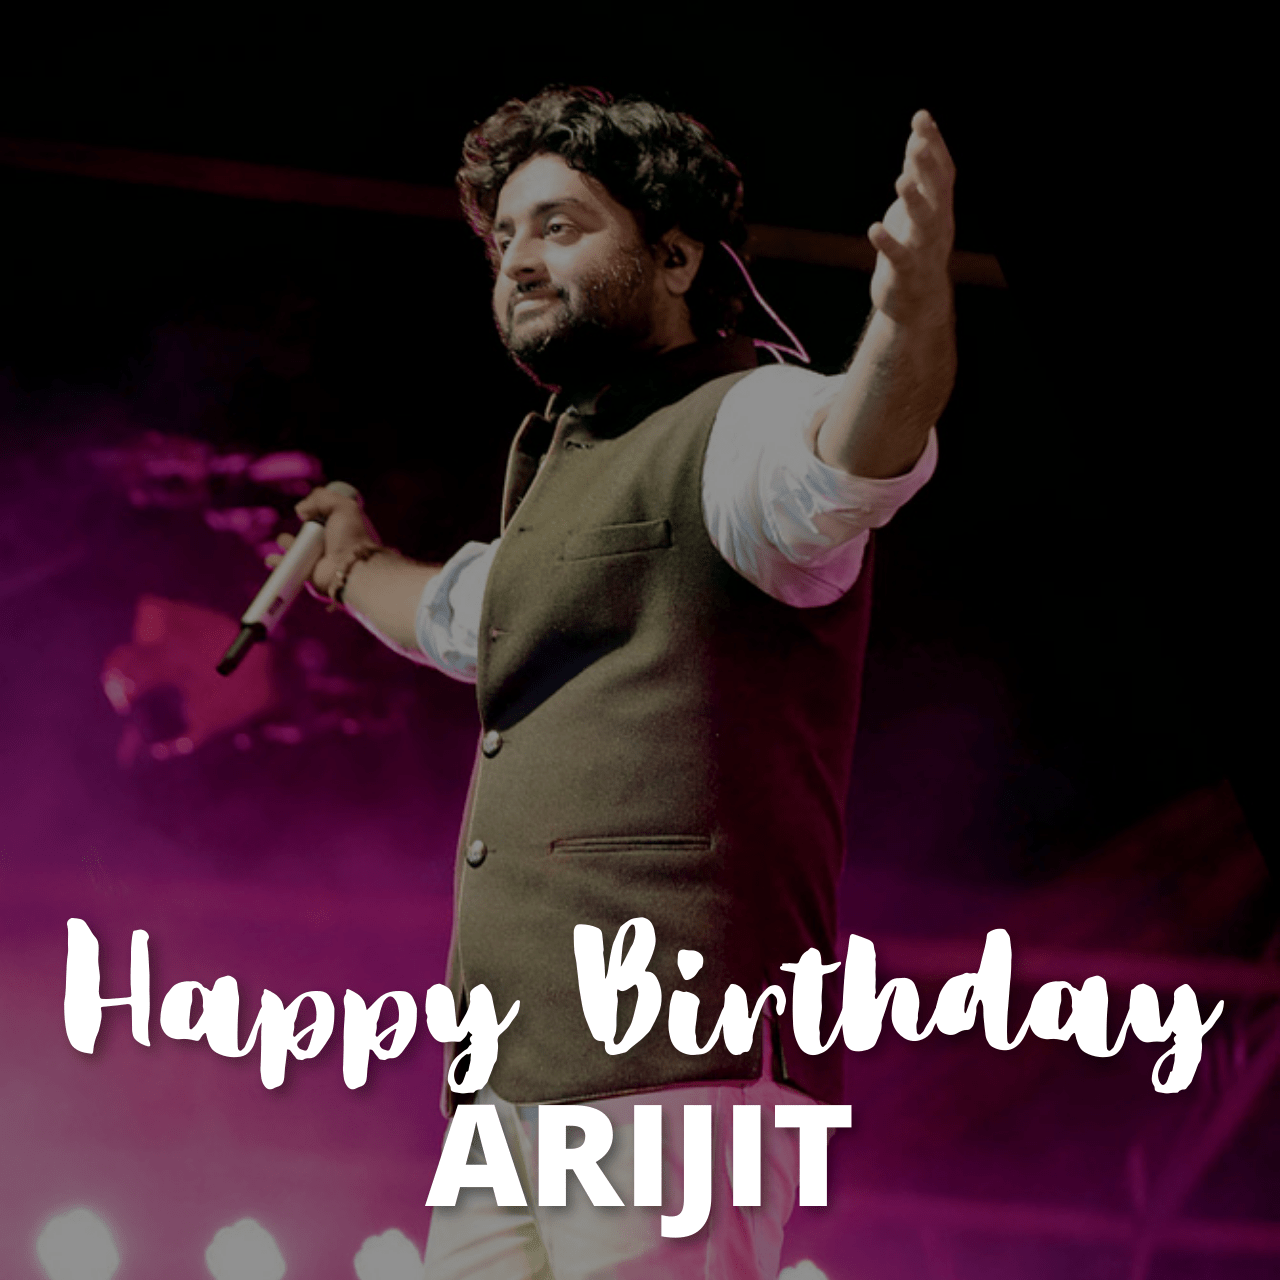 Happy Birthday Arijit Singh Wishes, Quotes Greetings, and HD Images to Share